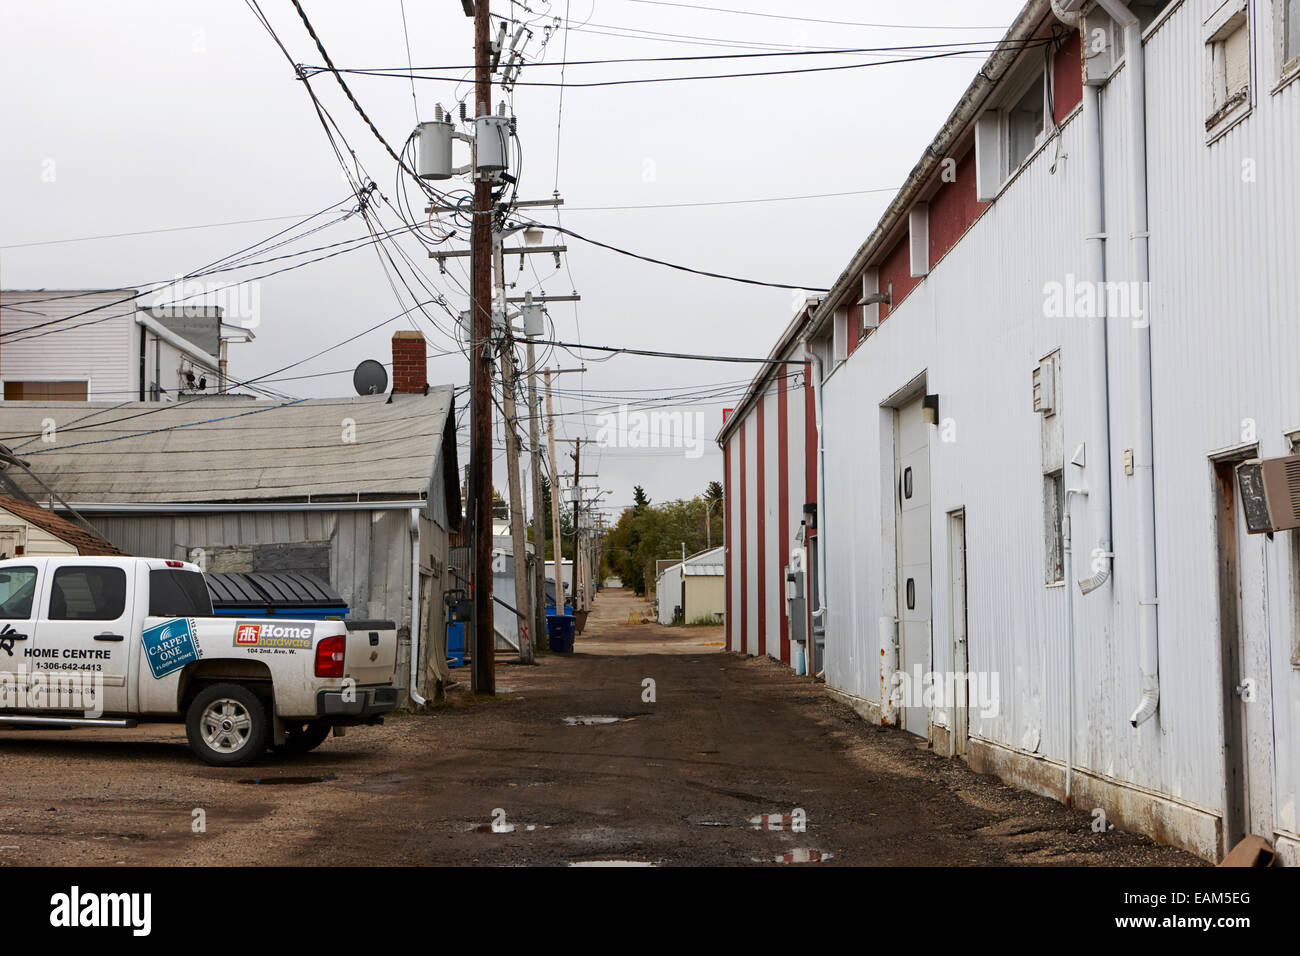 service alley at the rear of commercial premises Saskatchewan Canada Stock Photo